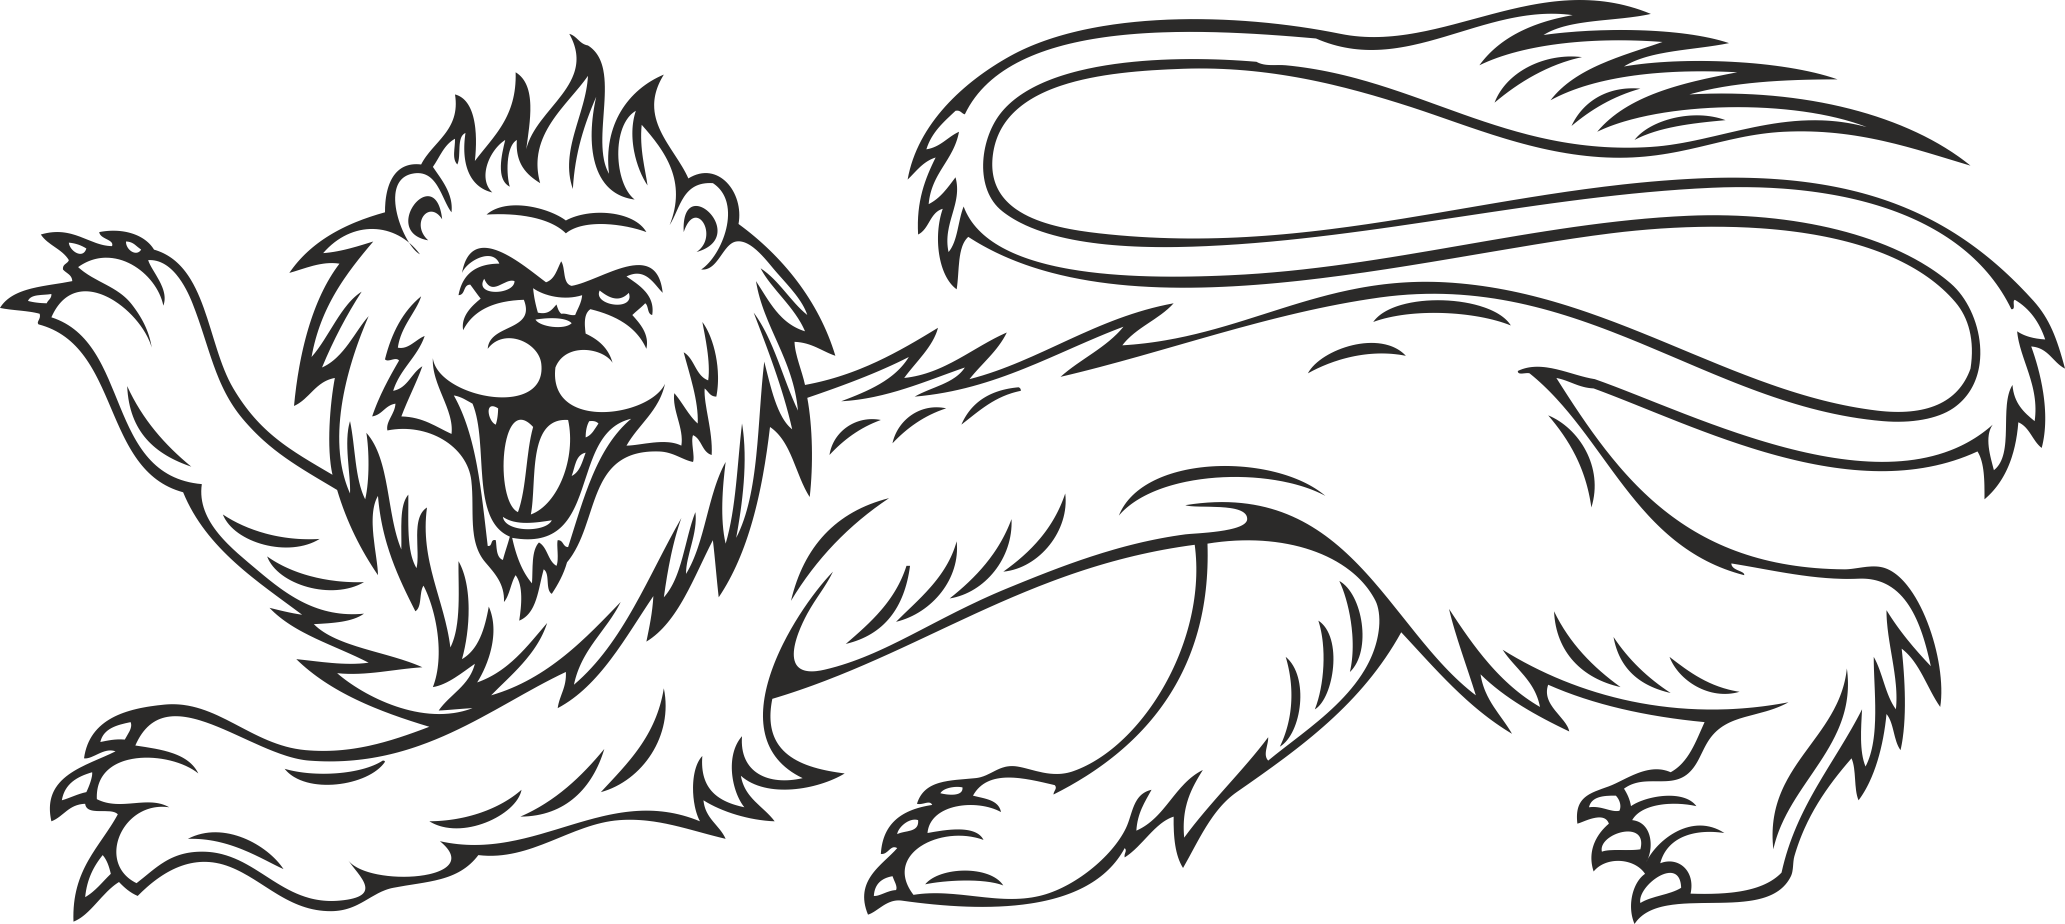 Heraldry Animal Clipart 08 Free DXF File